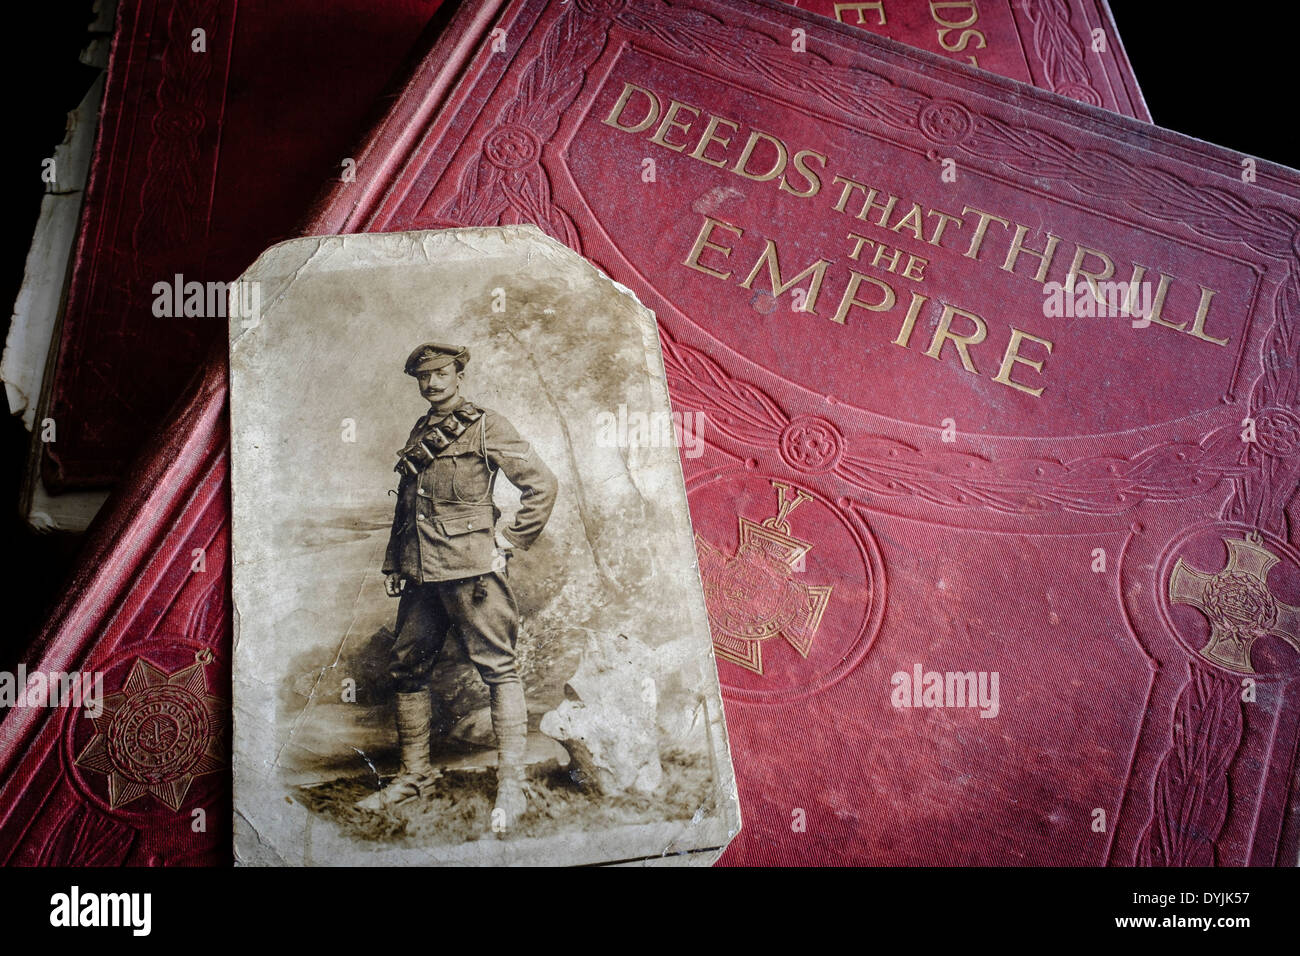 Photograph of John Edward William Samuels (DCM, MM), Royal Field Artillery, on volume of Deeds That Thrill The Empire in which he featured. - Stock Image